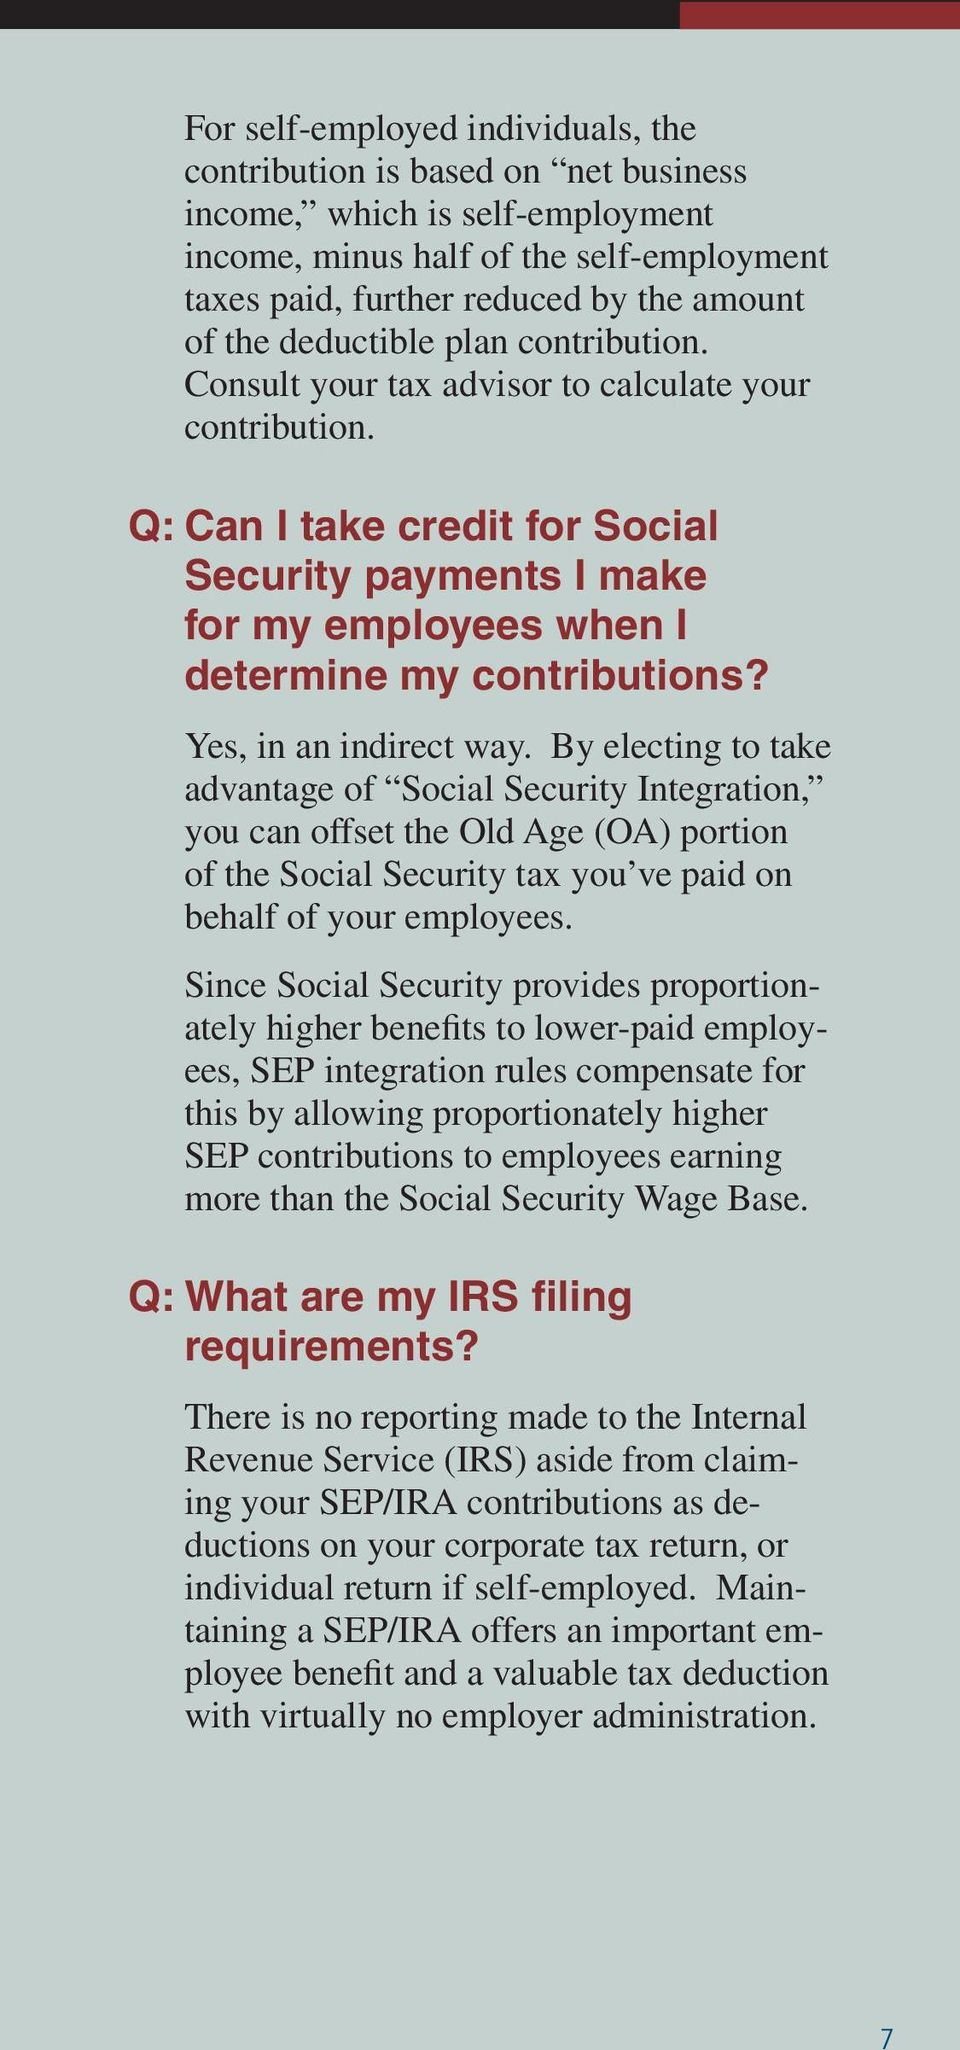 Yes, in an indirect way. By electing to take advantage of Social Security Integration, you can offset the Old Age (OA) portion of the Social Security tax you ve paid on behalf of your employees.